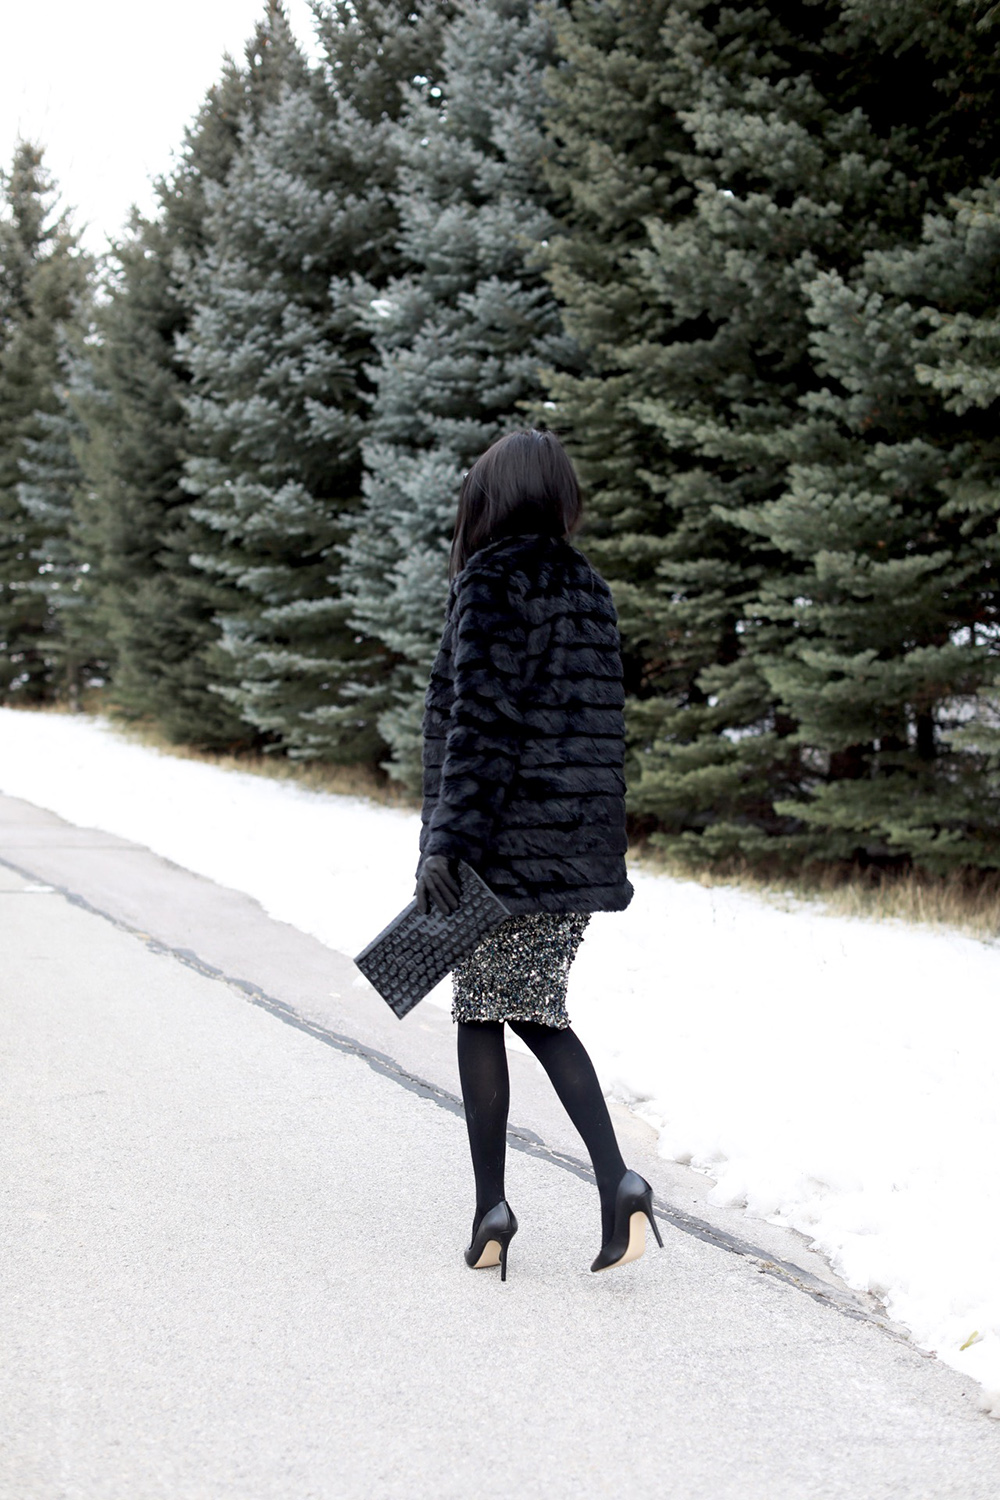 Turtleneck:  Neiman Marcus  | Skirt:  Haute Hippie  | Coat:  John & Jenn  | Tights:  Neiman Marcus  | Pumps: Neiman Marcus  | Clutch:  St. John  | Watch:  Burberry  | Cuff:  Panacea  | Sunglasses: Karen Walker (similar style  here ) | Gloves: old, similar style  here  (all ℅ Last Call